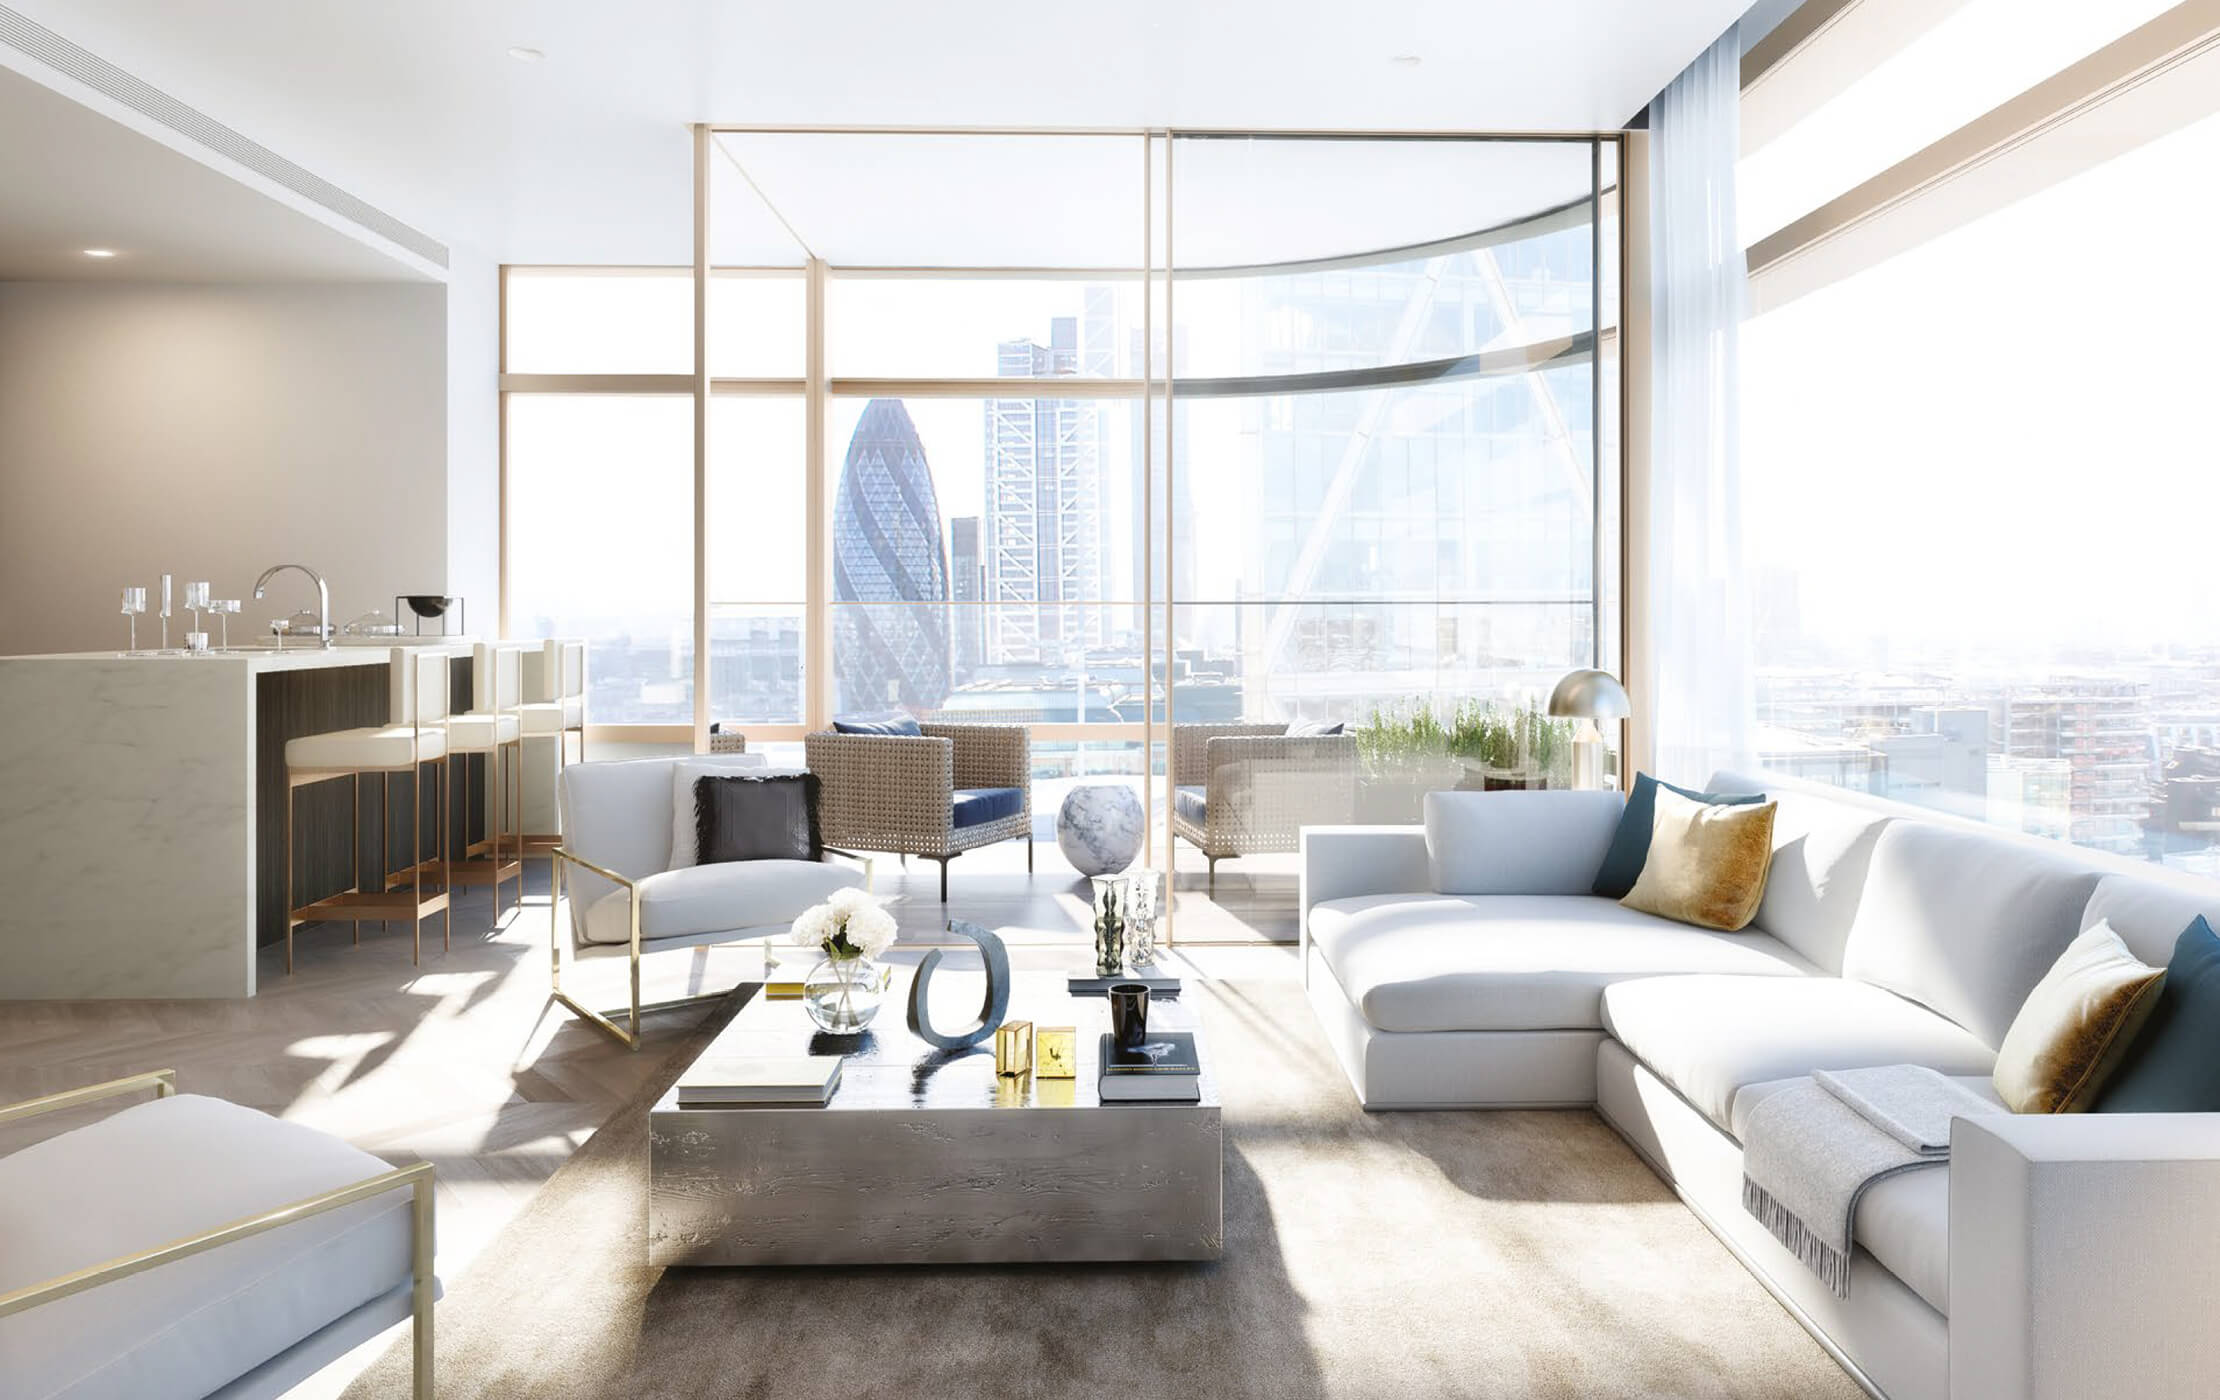 3D CGI render of a spacious apartment interior, with commanding views of The Gherkin (30 St Mary Axe) and the city